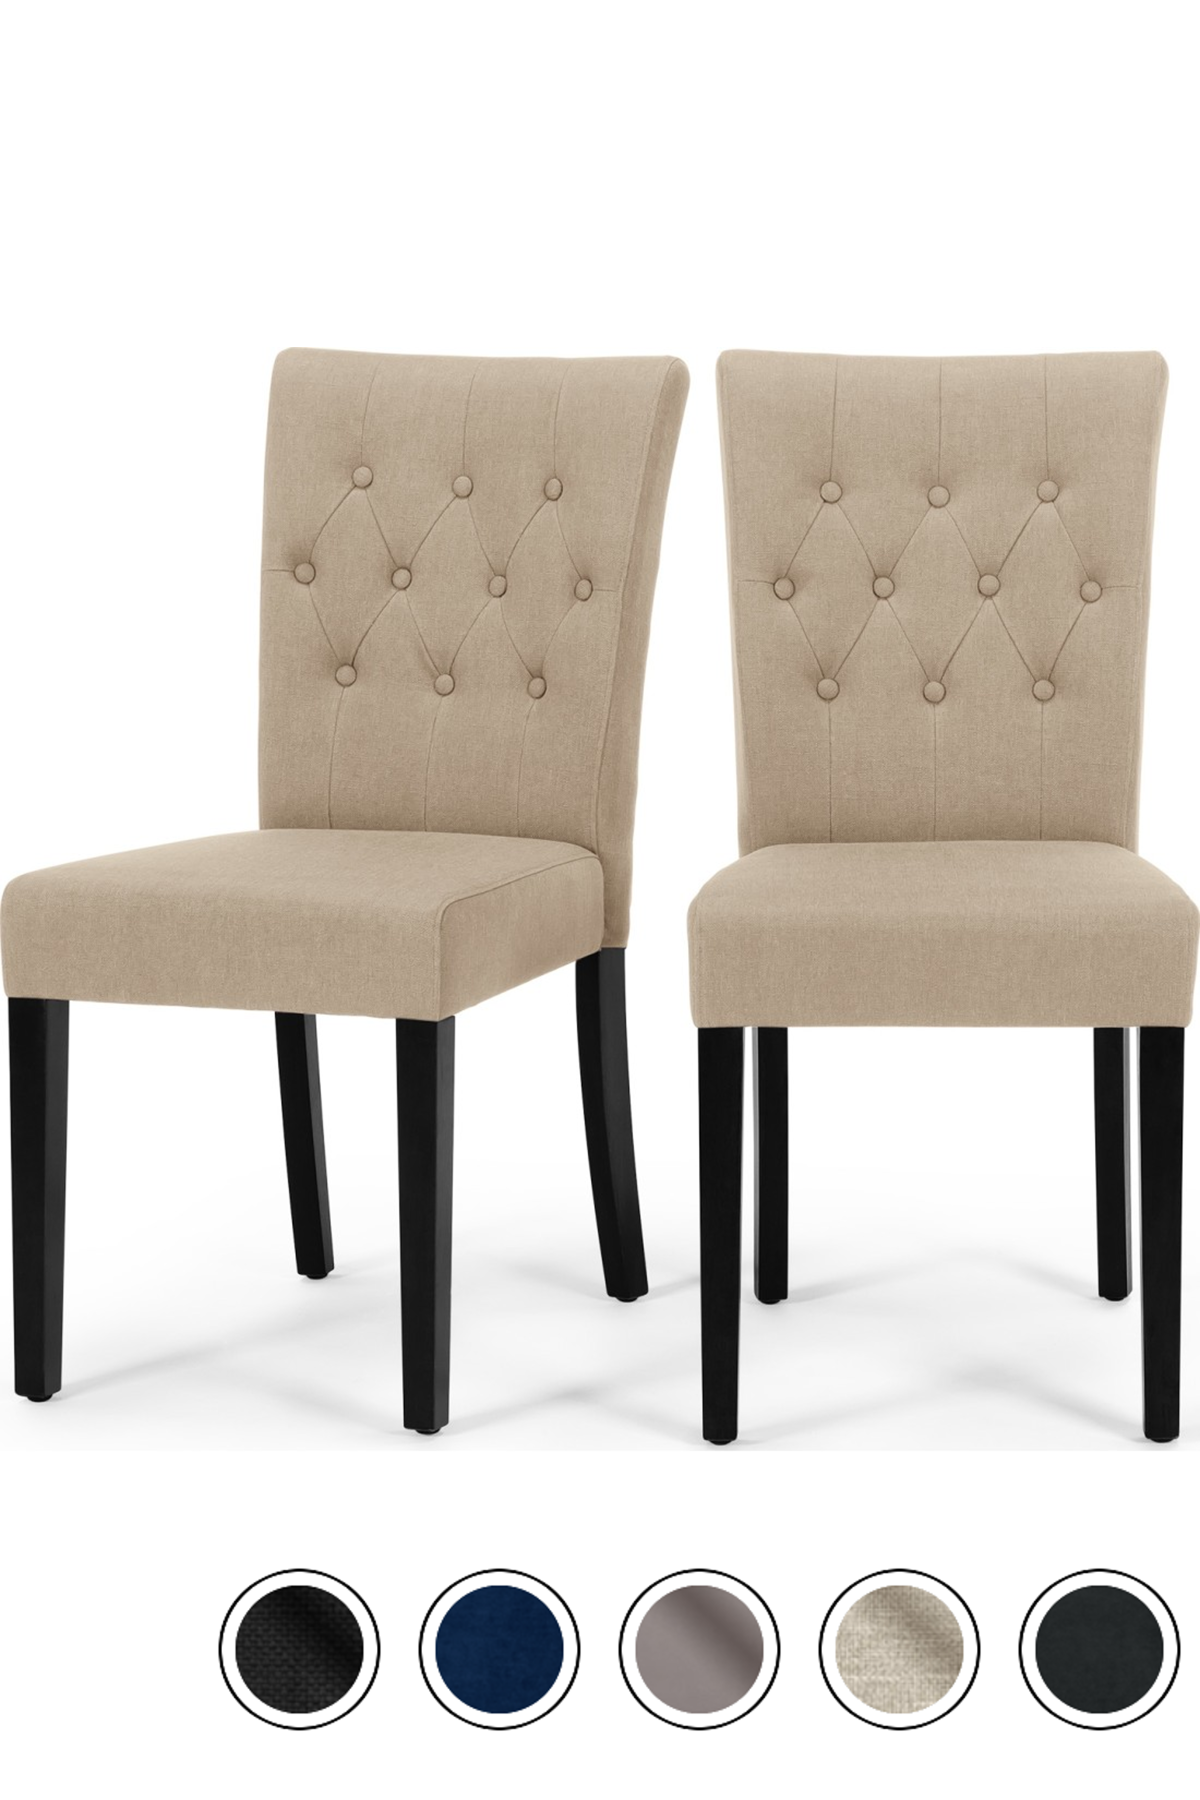 Best Made Set Of 2 Dining Chairs Biscuit Beige Black 400 x 300